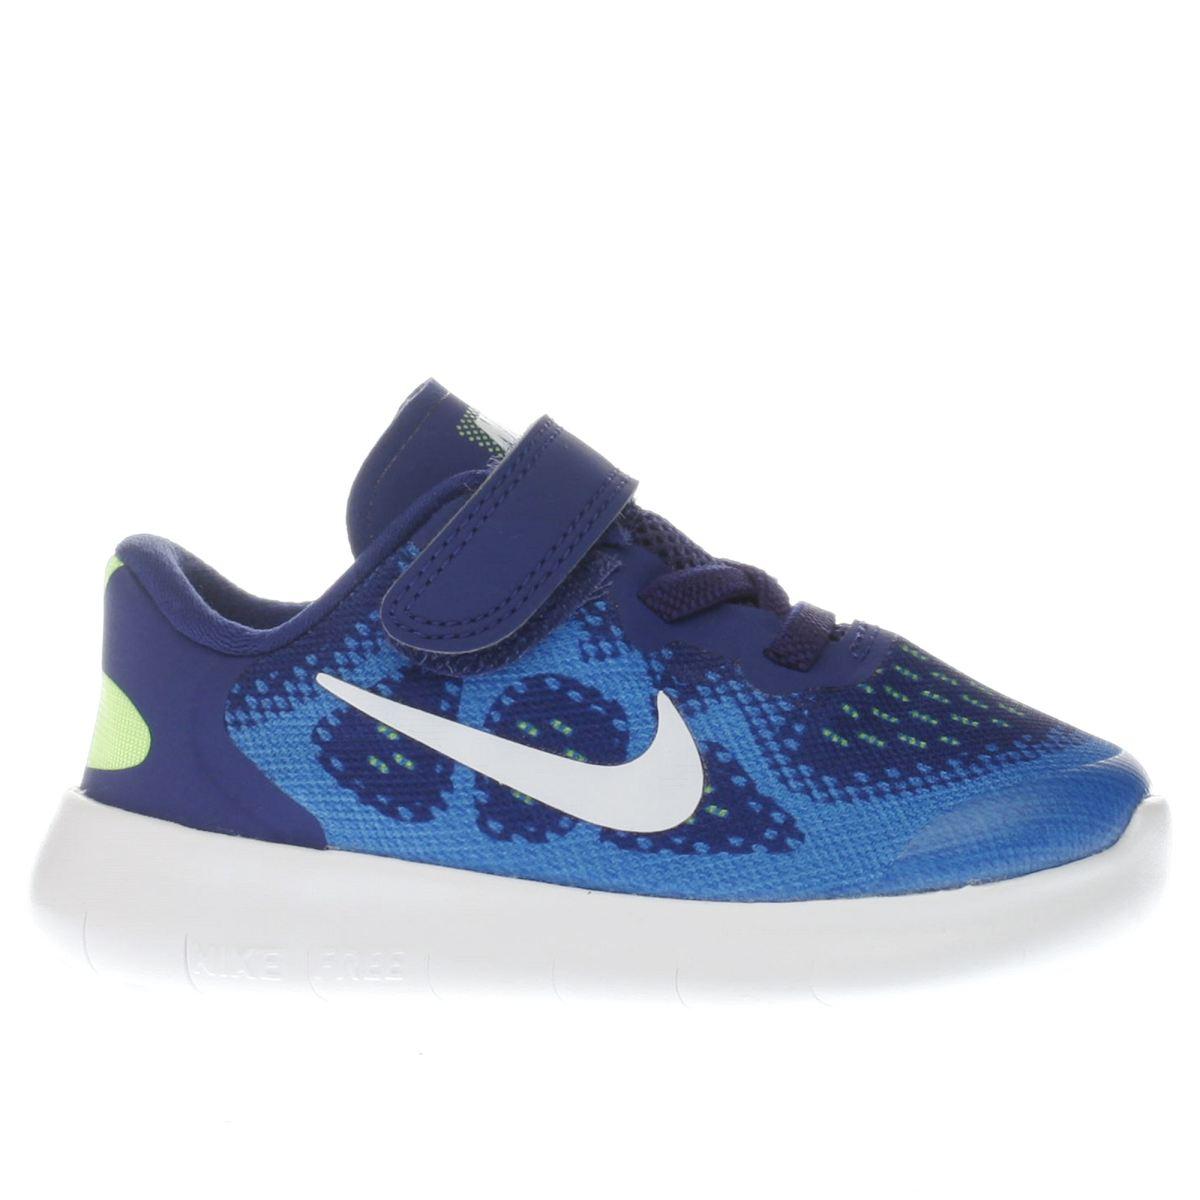 nike blue free run 2 Boys Toddler Trainers